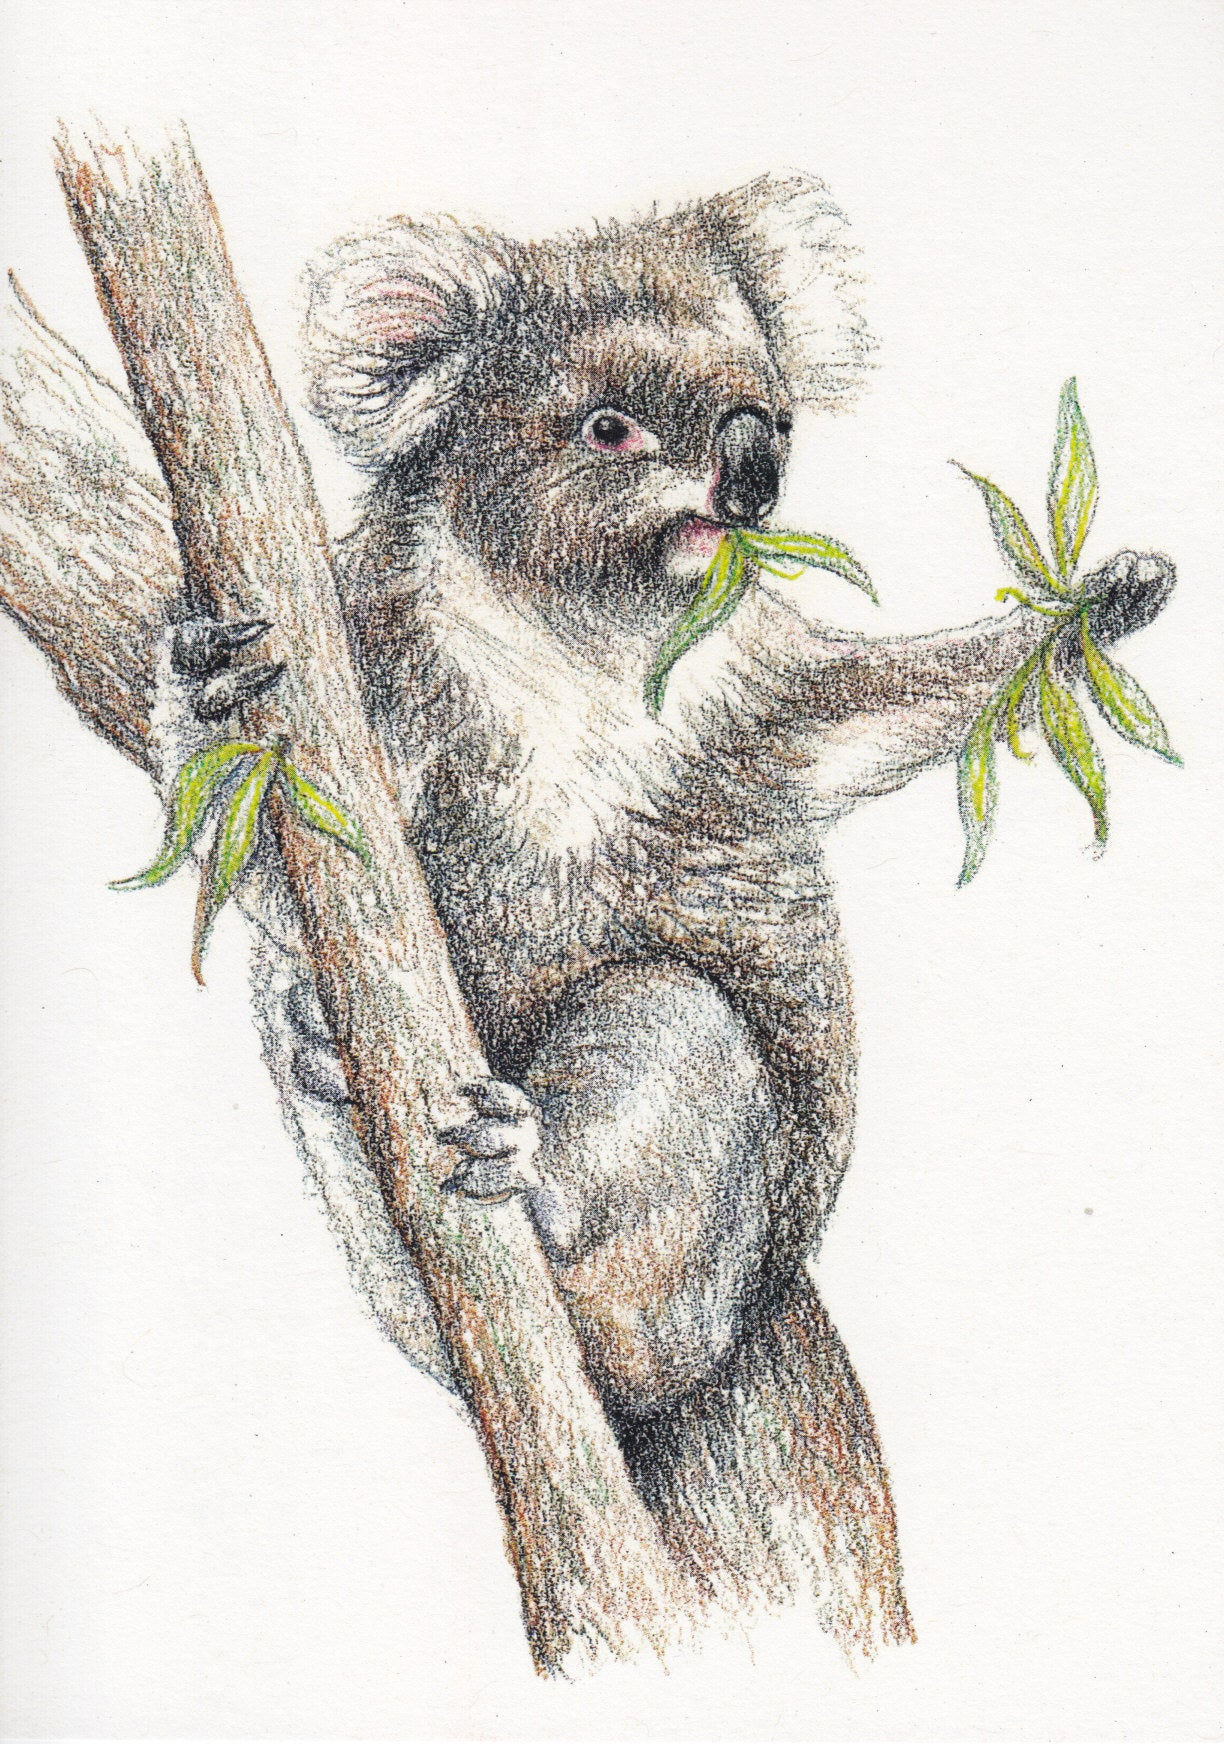 Greeting Card - Koala | Jo Pearcy